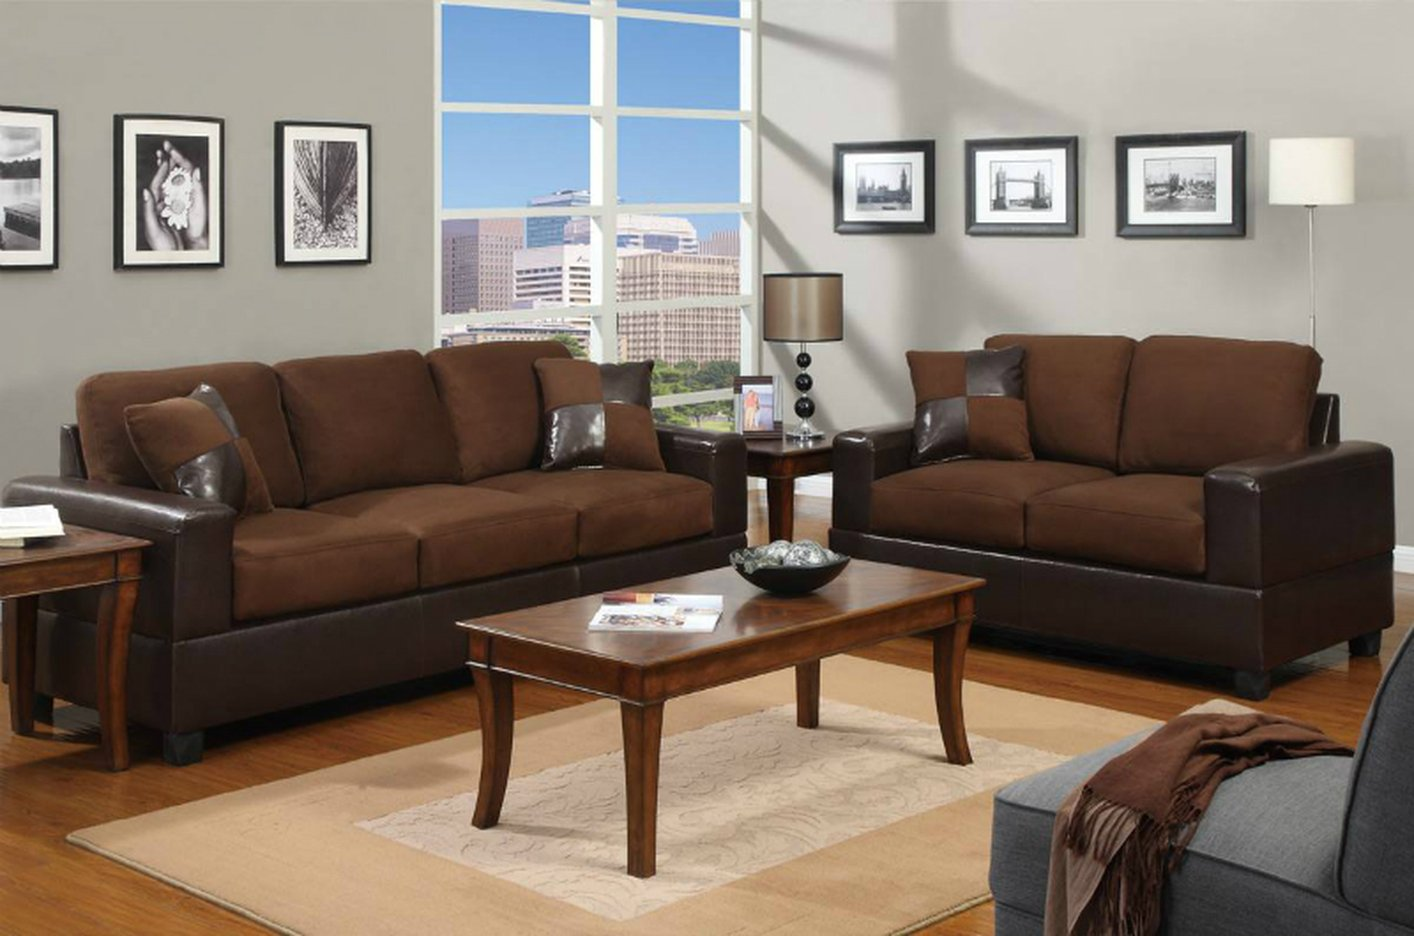 Poundex Tesse F7591 Brown Fabric Sofa And Loveseat Set Steal A Sofa Furniture Outlet Los